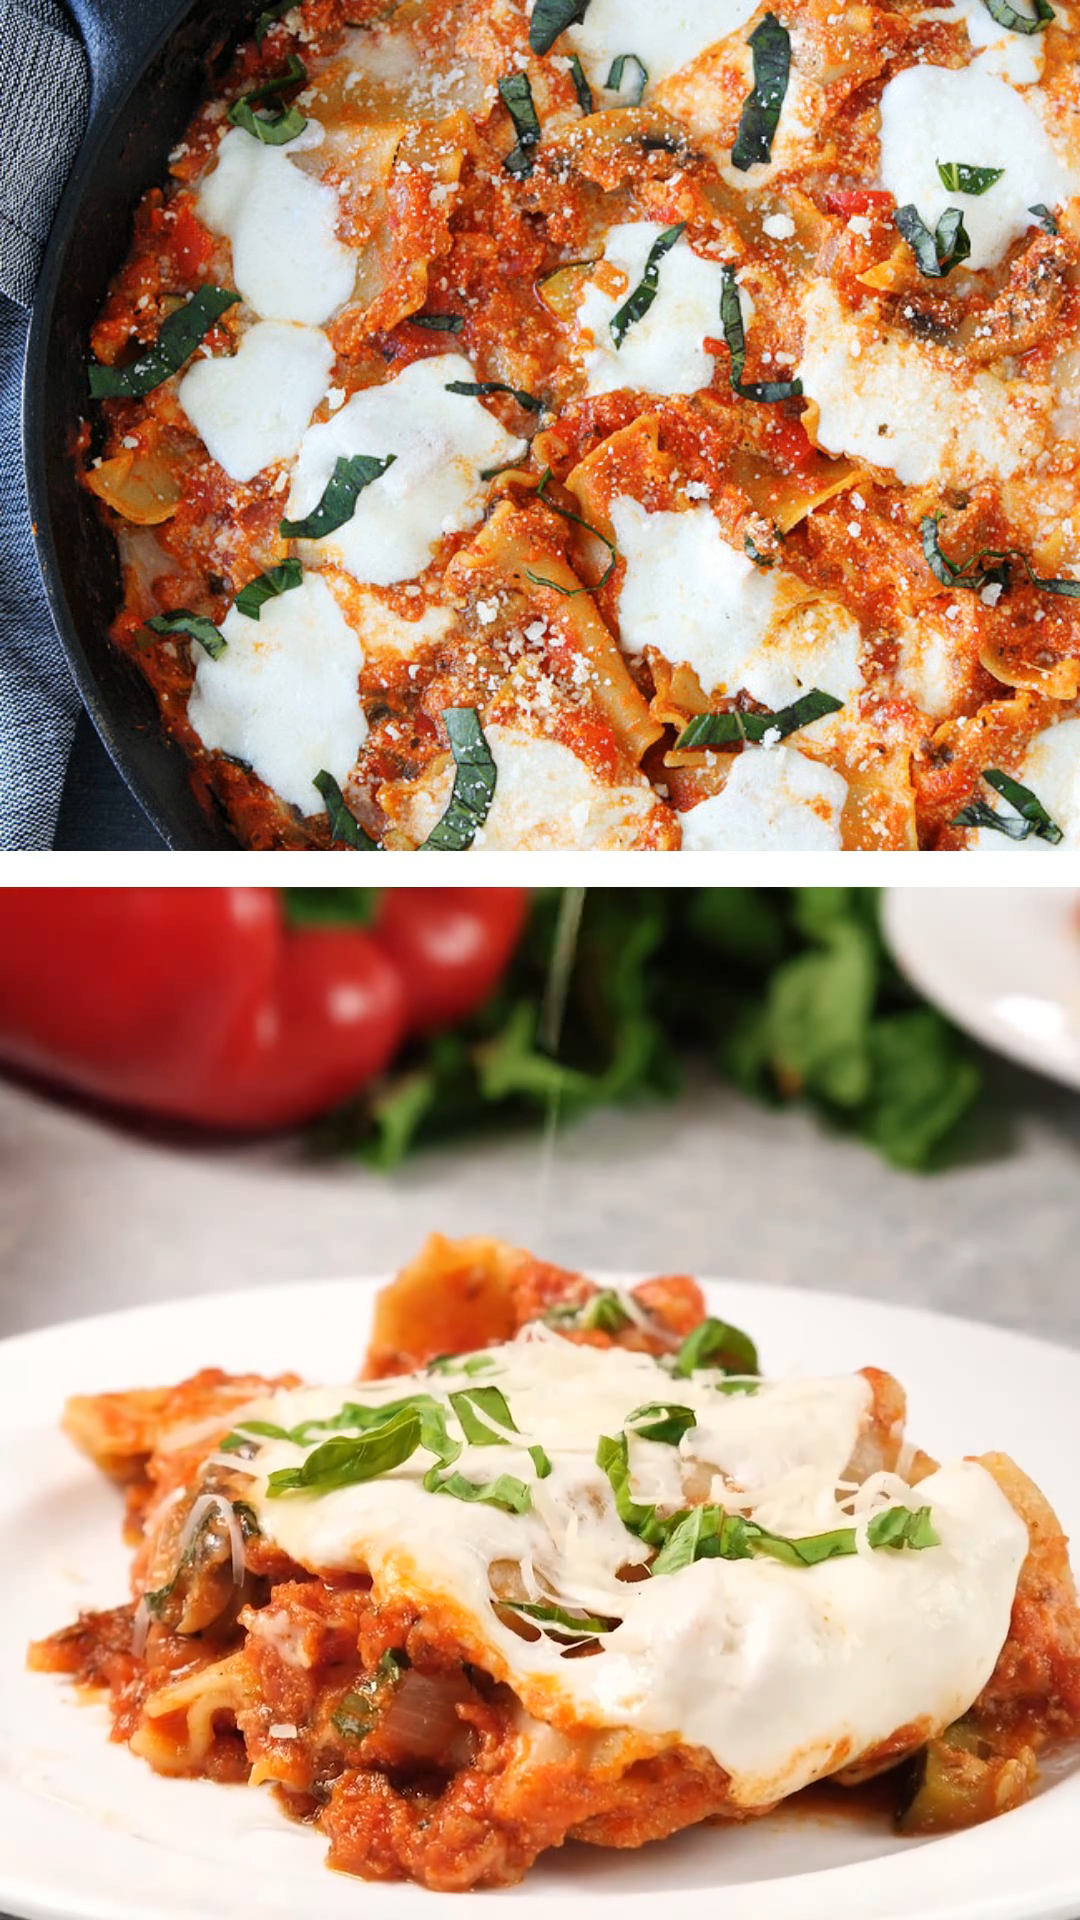 Easy Skillet Vegetable Lasagna is a  shortcut version of classic lasagna made in one skillet great weeknight meal! This lasagna is actually loaded with veggies, marinara sauce and lots of cheese. Best skillet vegetable lasagna your family should taste.